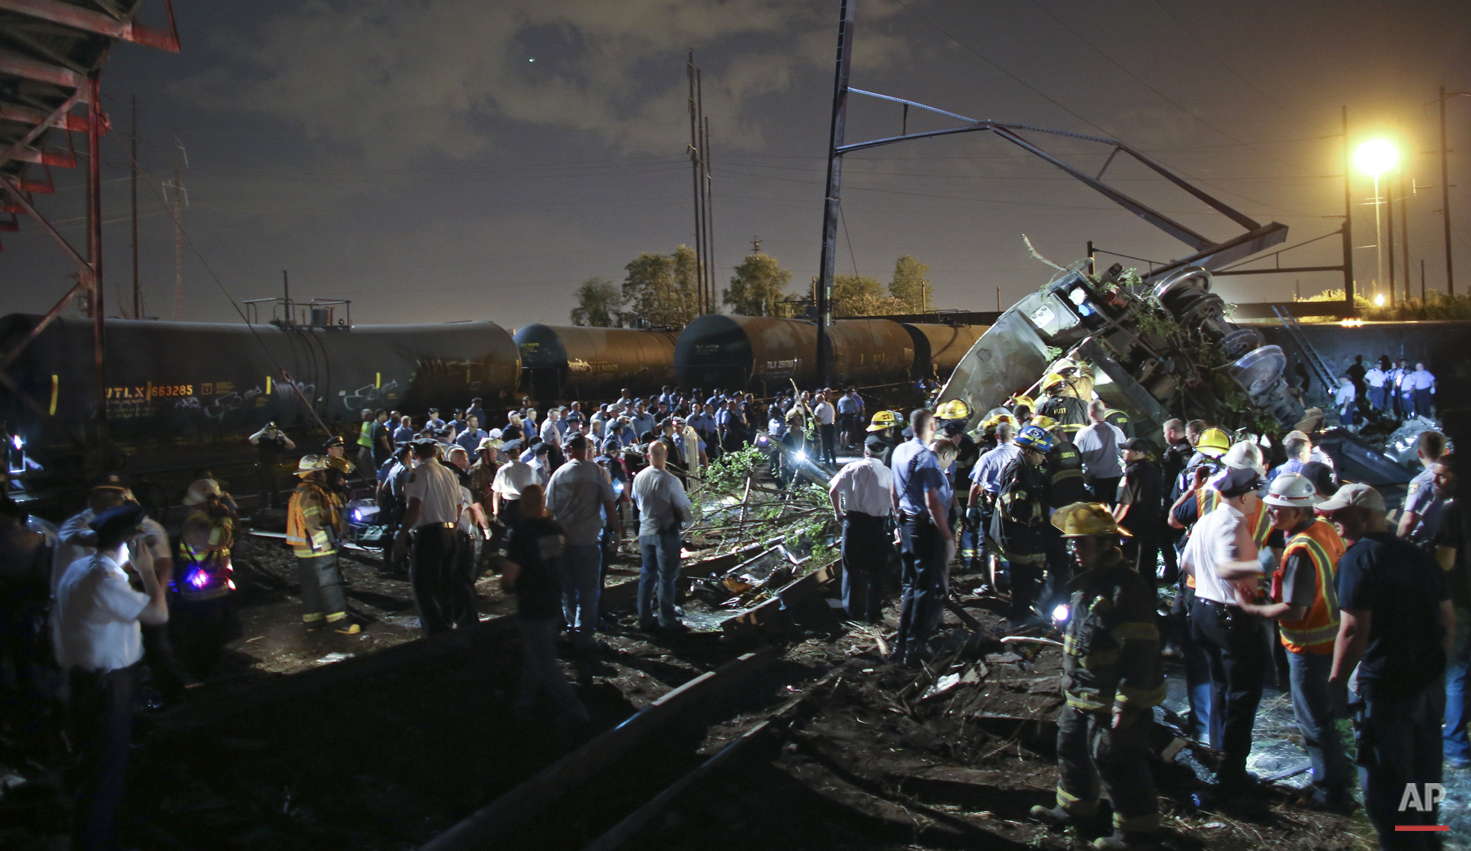 Emergency personnel work the scene of a Amtrak train wreck, Tuesday, May 12, 2015, in Philadelphia.  (AP Photo/ Joseph Kaczmarek)